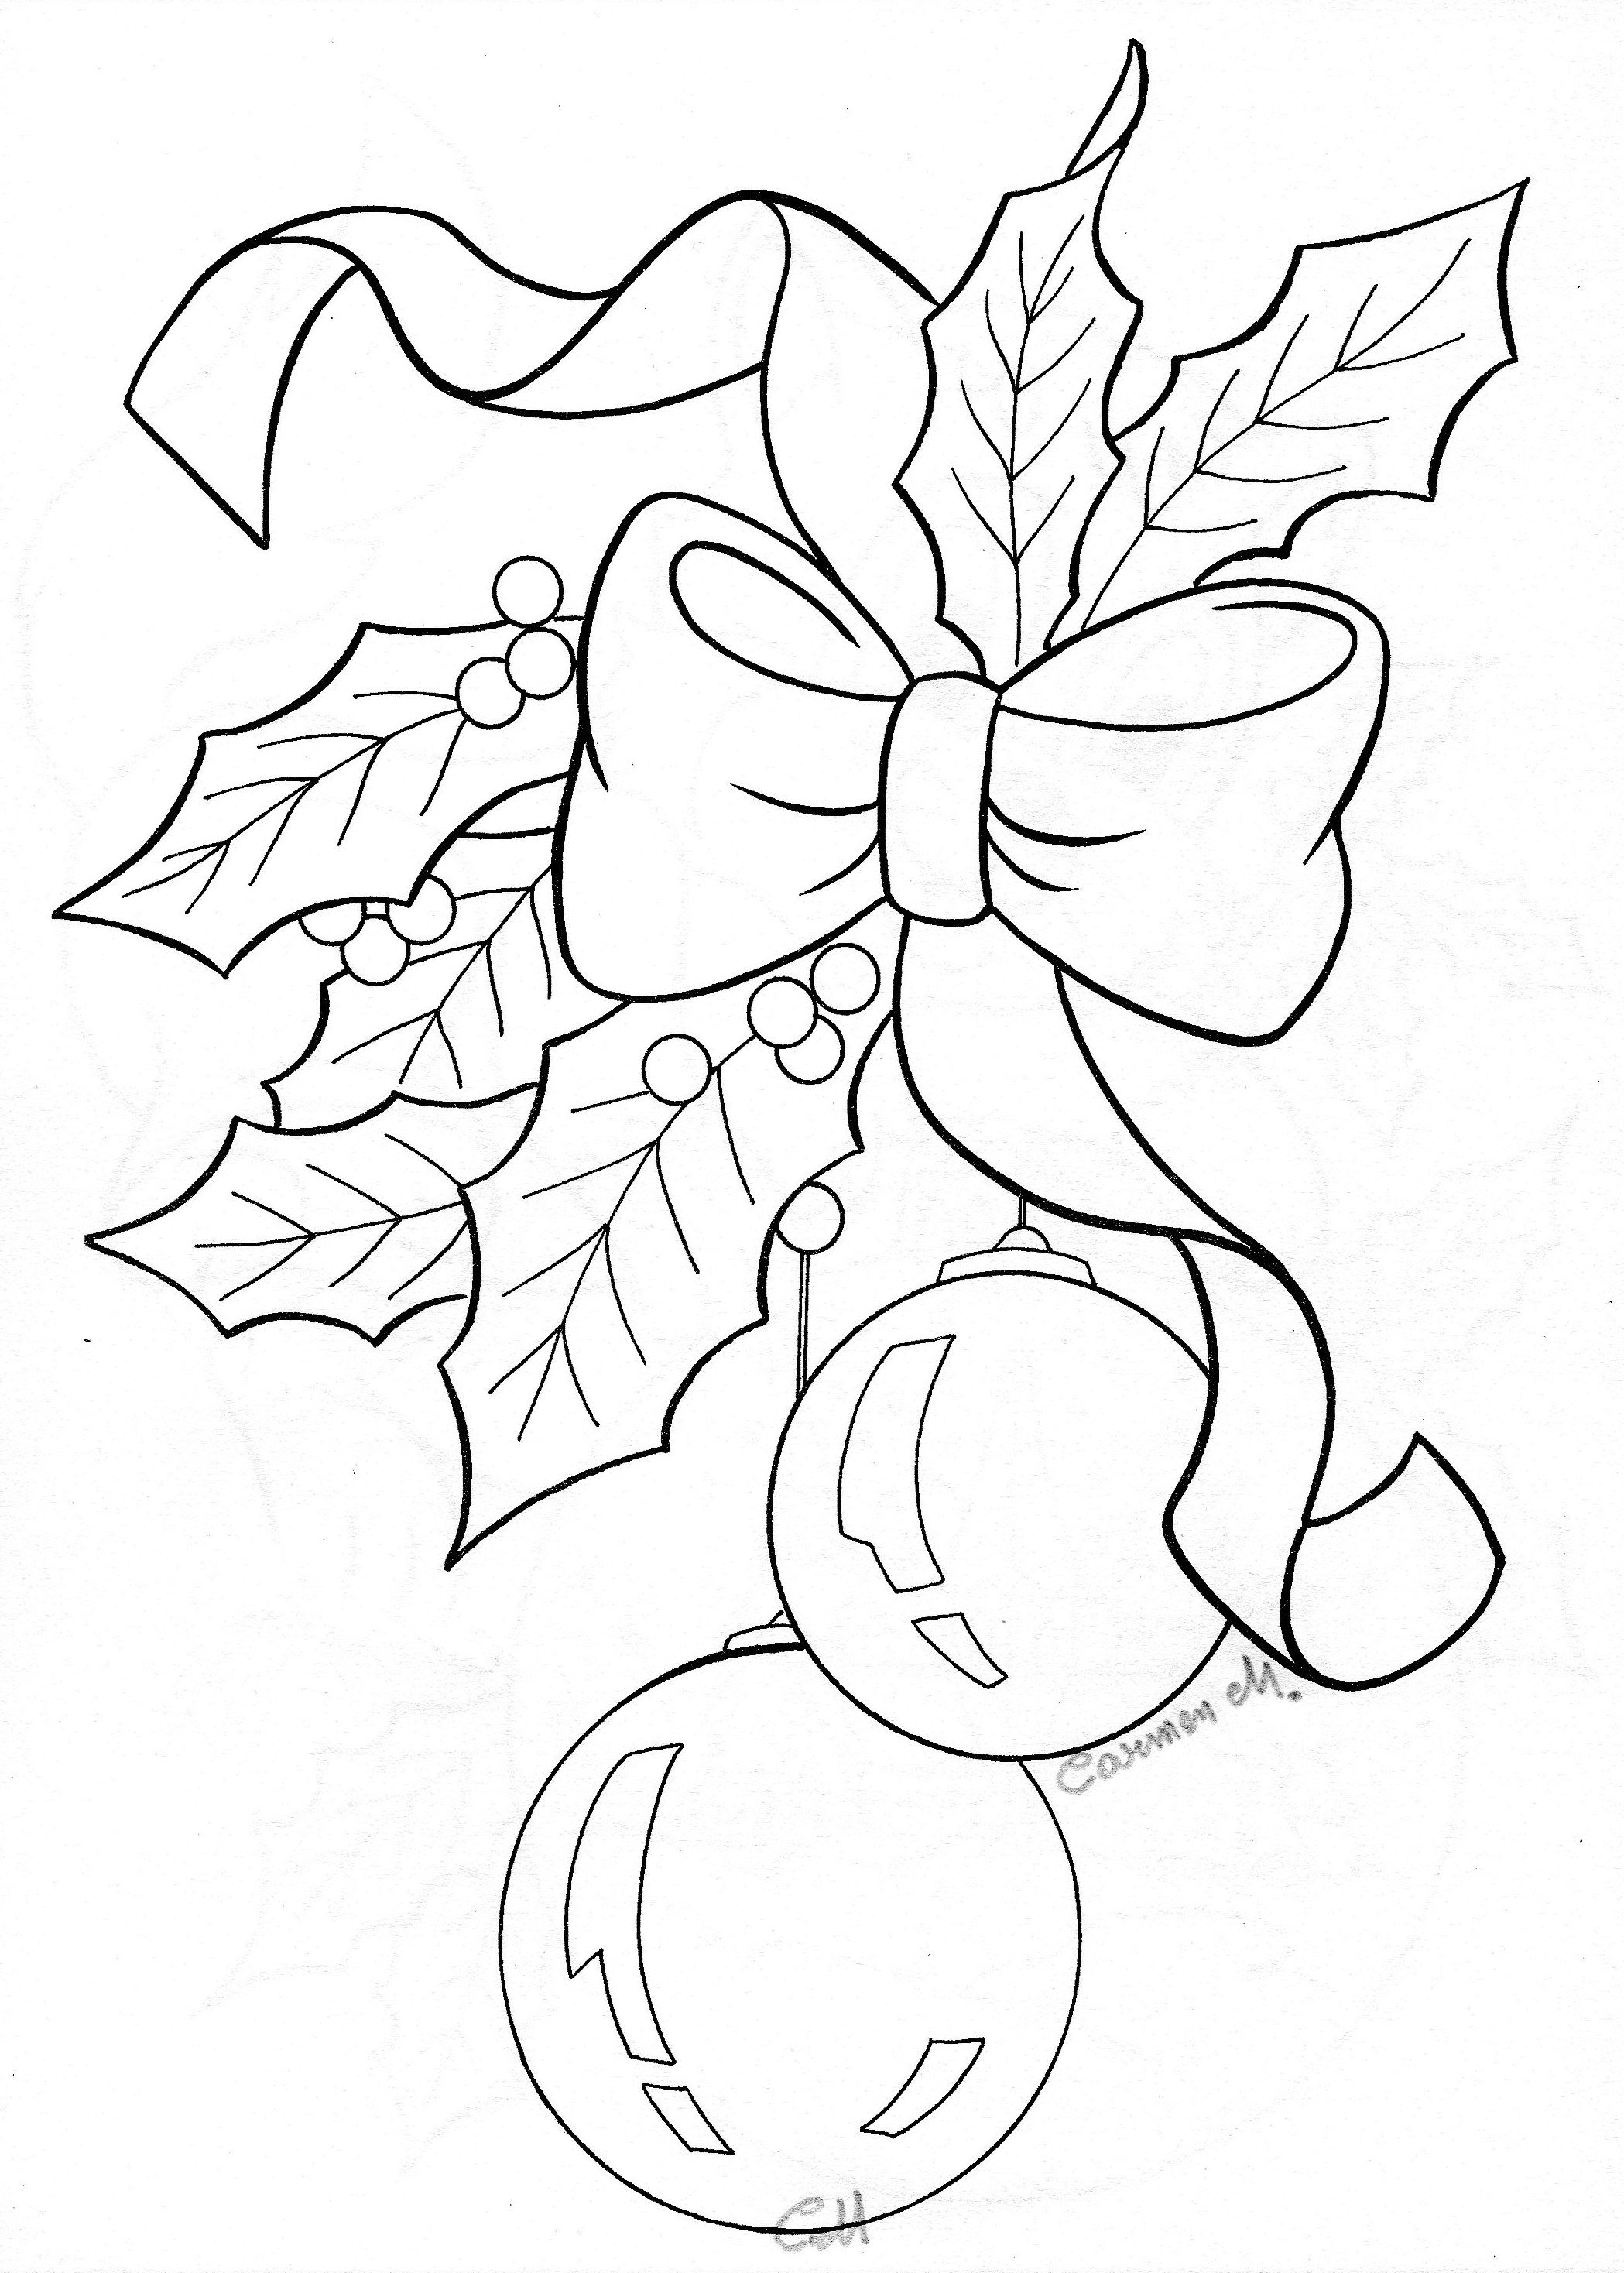 Christmas Colouring Pages Holly With Bow Ornaments Sketch Adult Coloring Pictures Pinterest